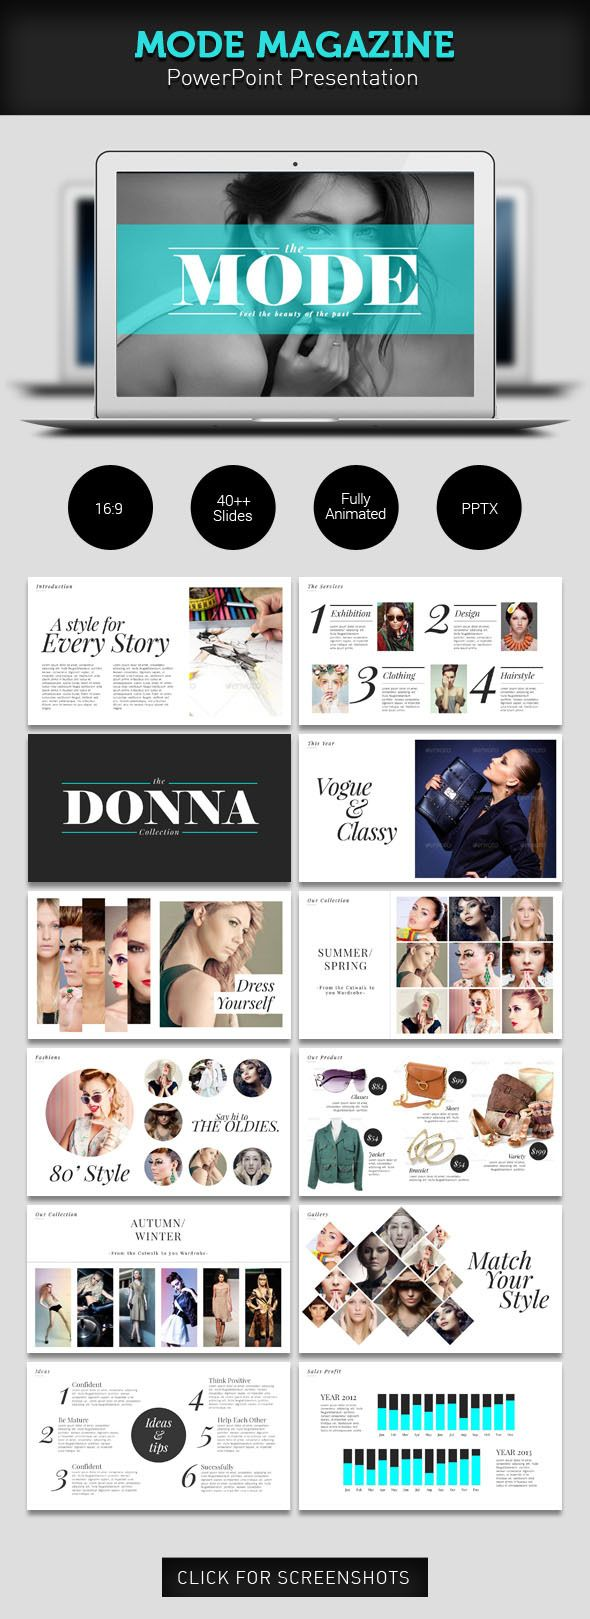 powerpoint magazine template gallery - templates example free download, Powerpoint templates